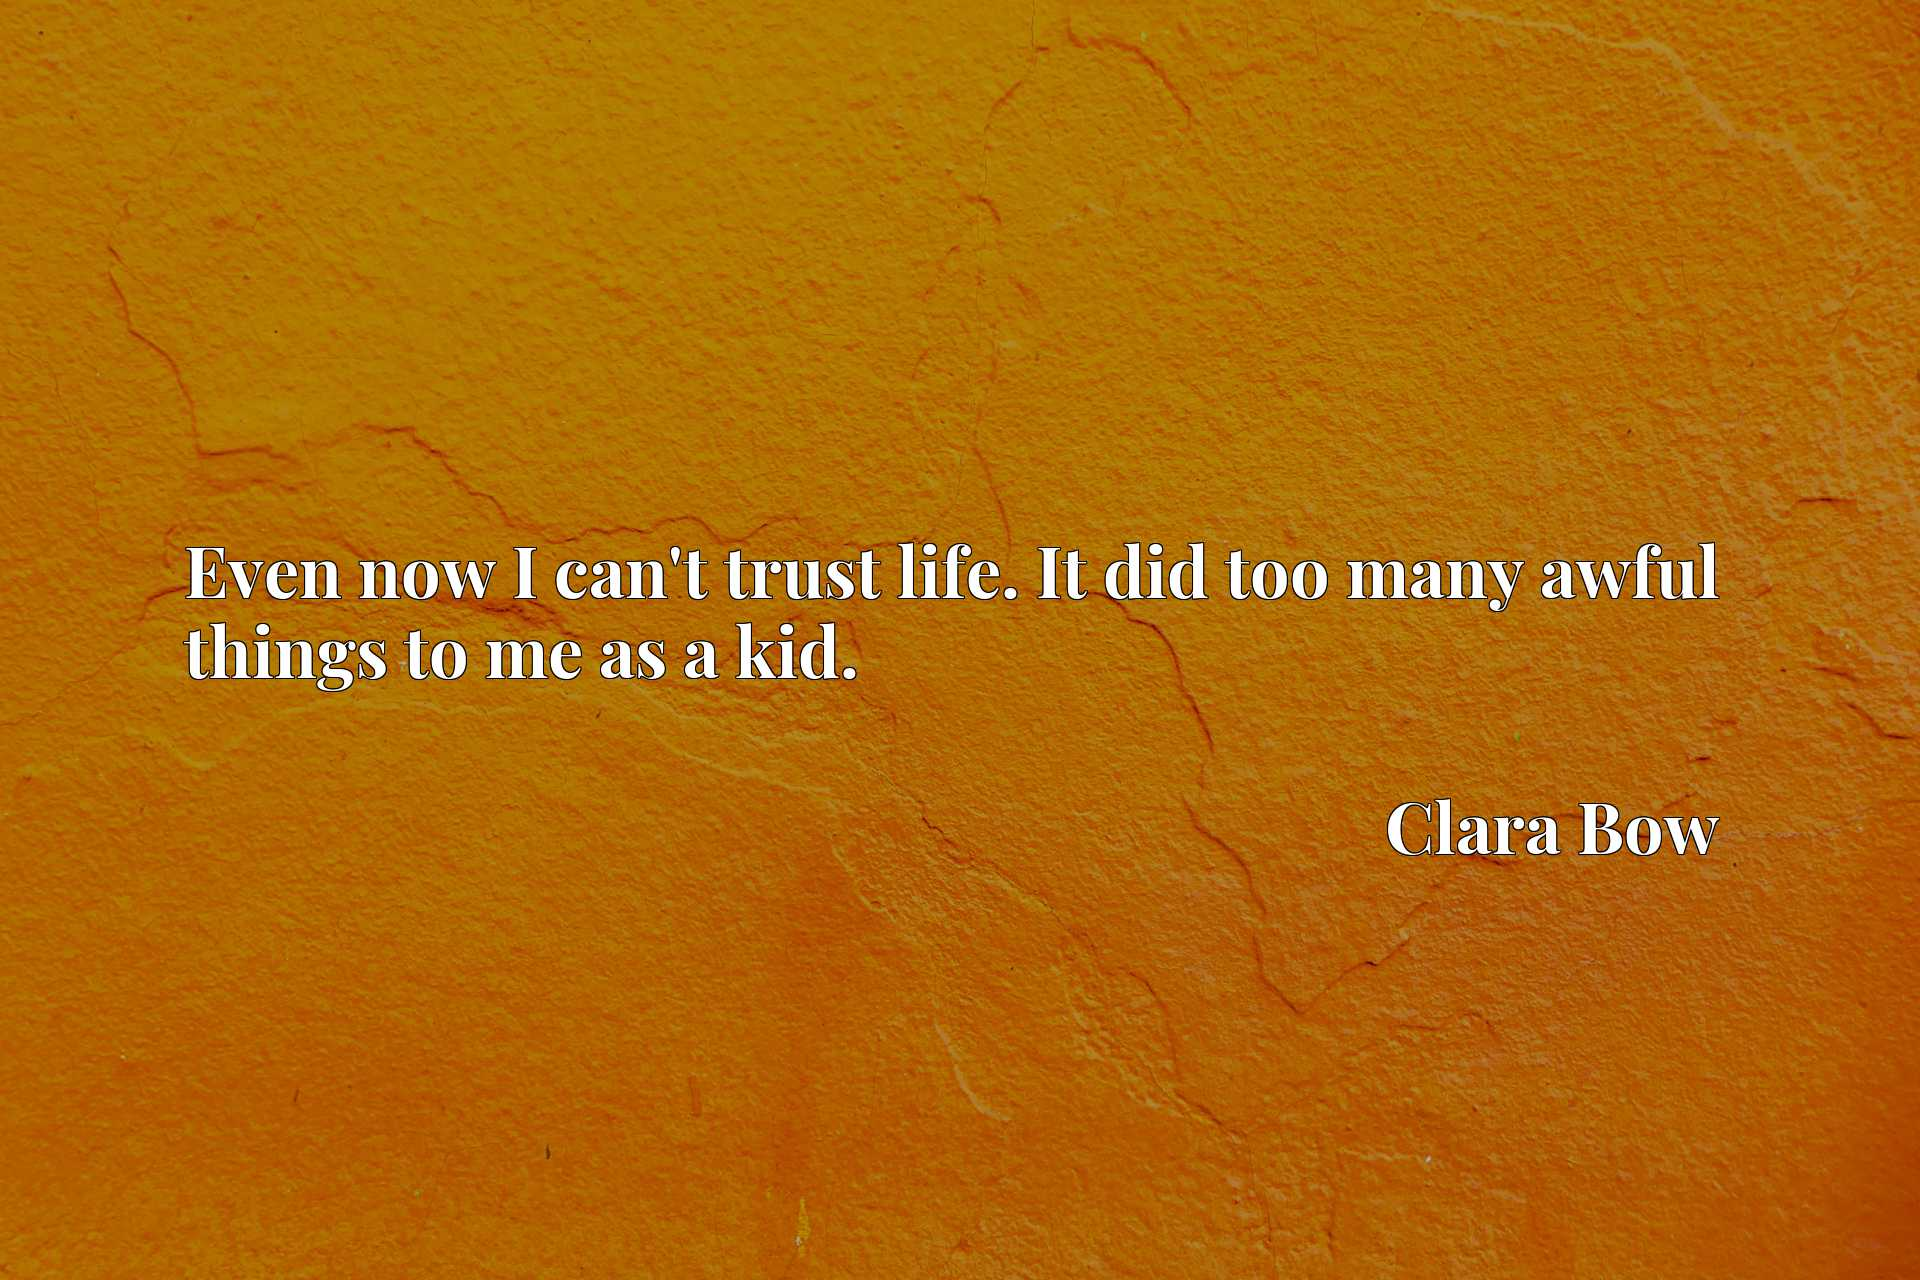 Quote Picture :Even now I can't trust life. It did too many awful things to me as a kid.